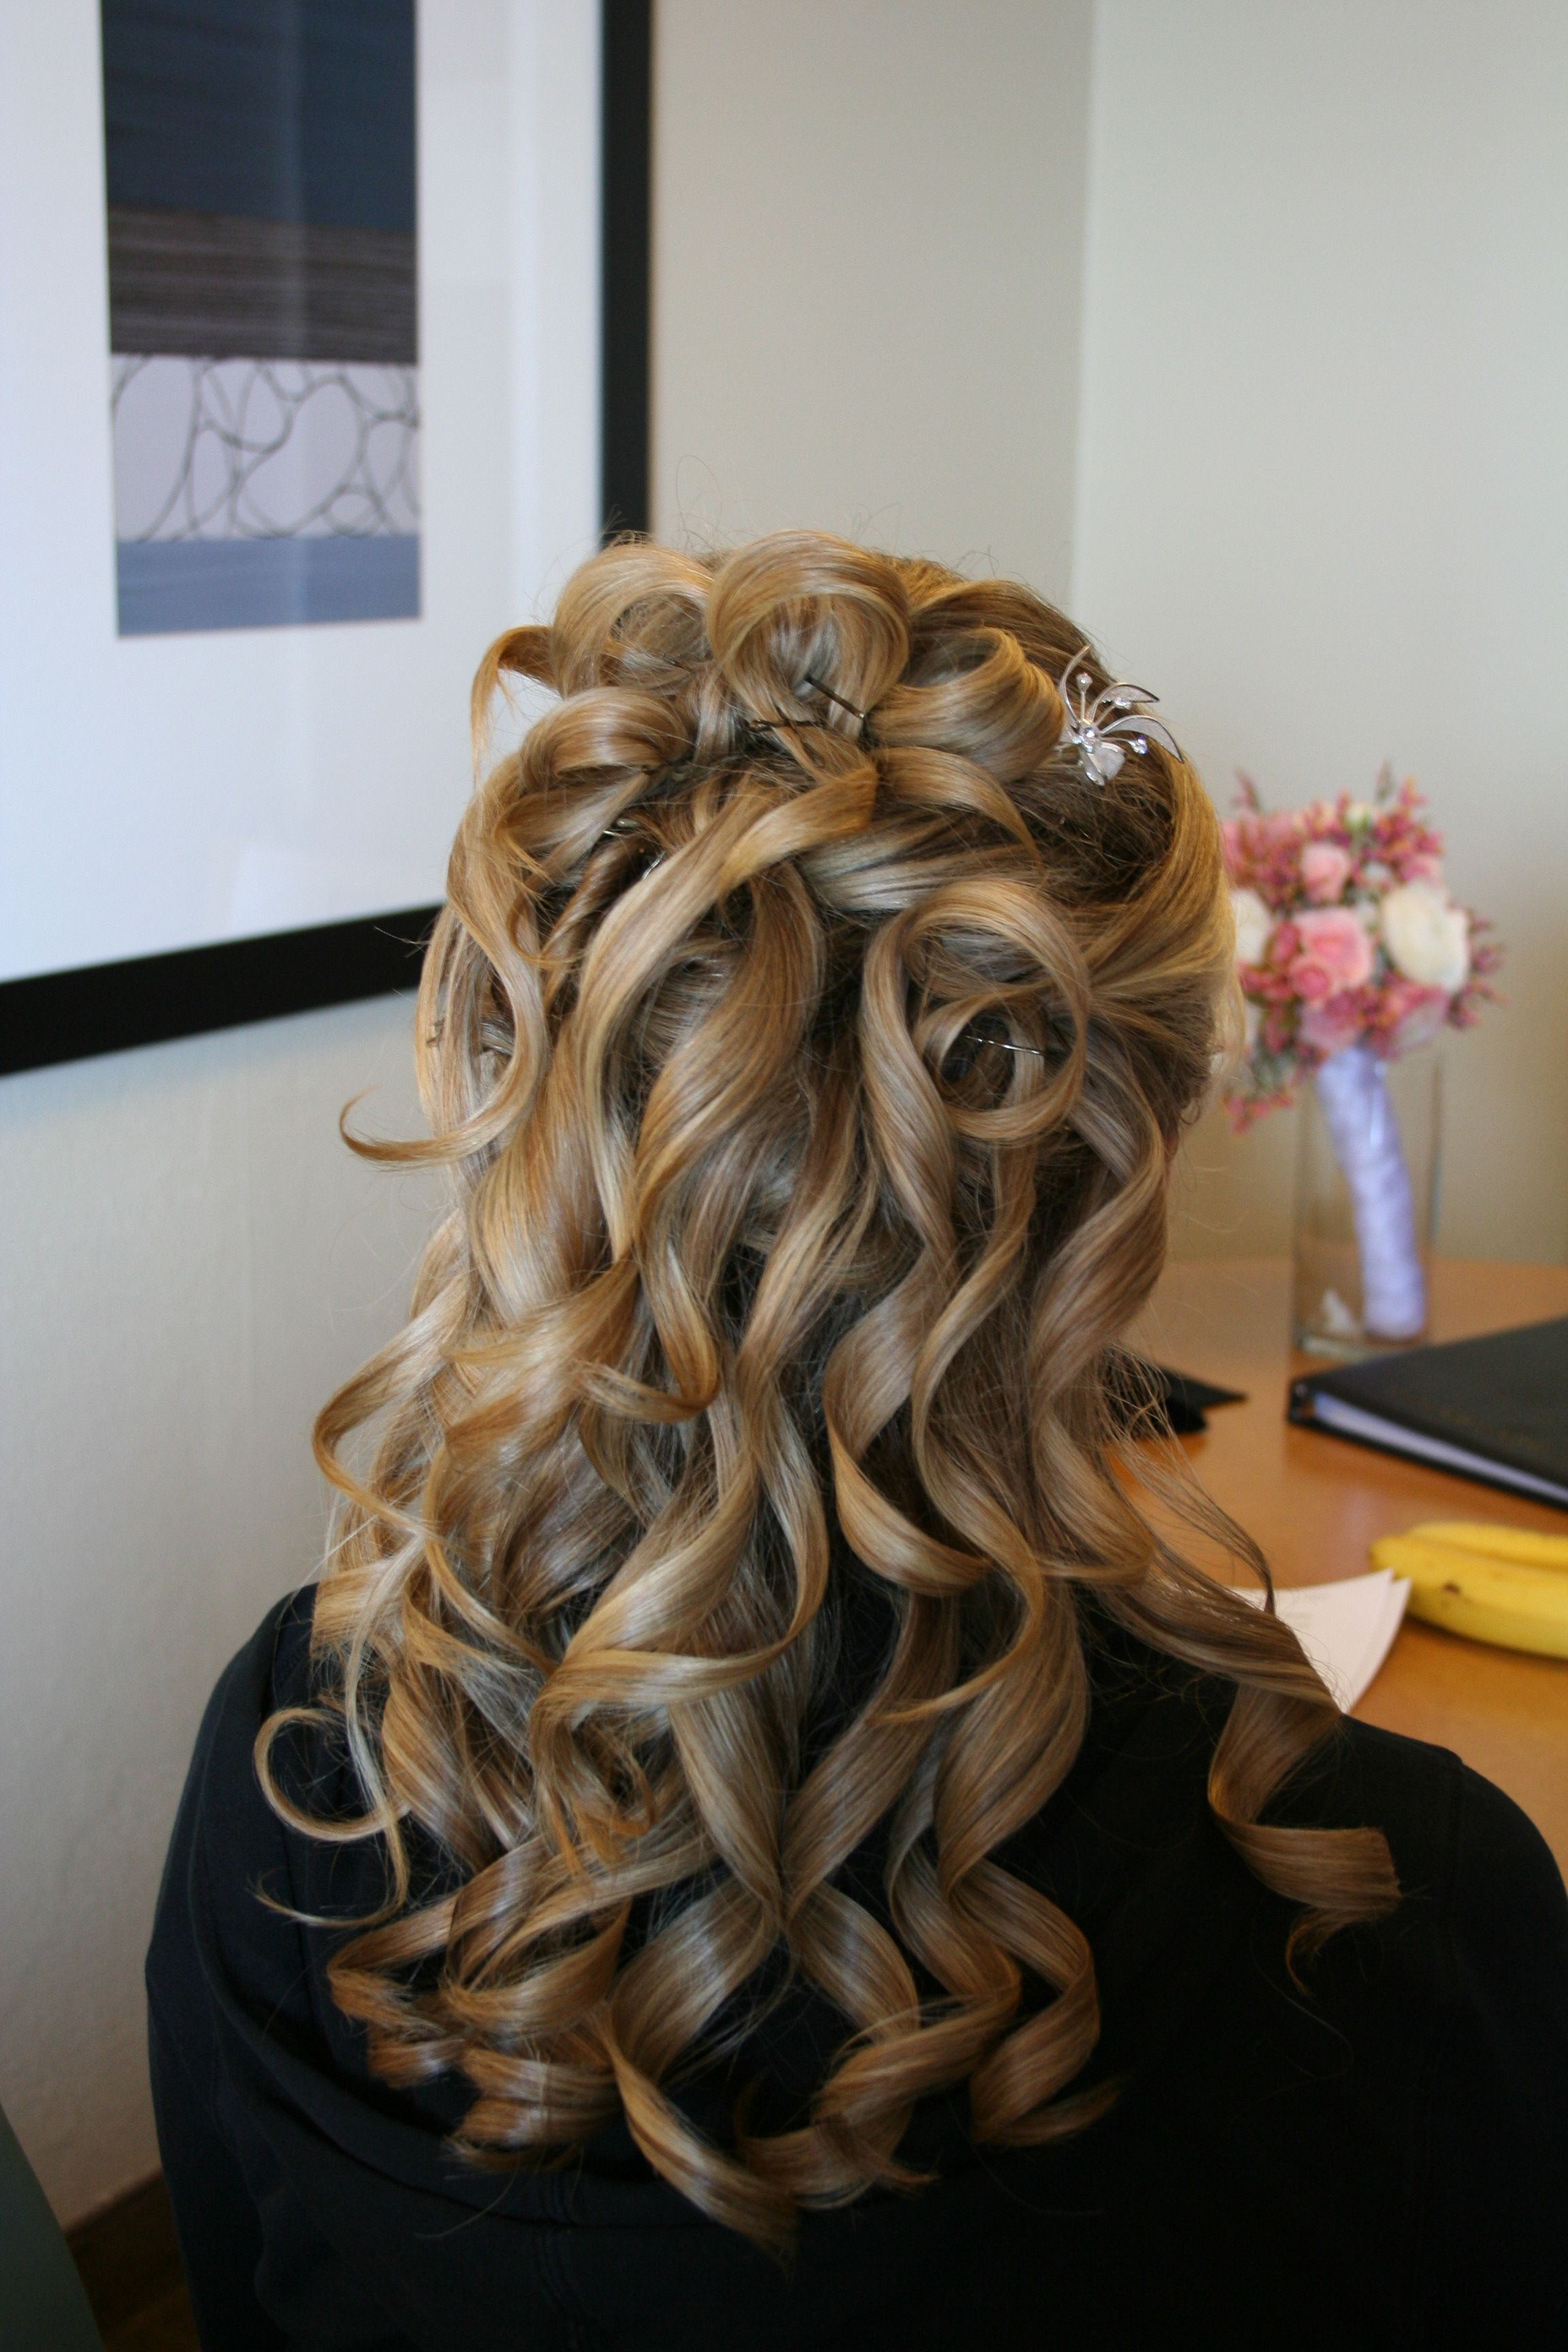 hair and make up by salon & spa 18, myrtle beach sc 29577